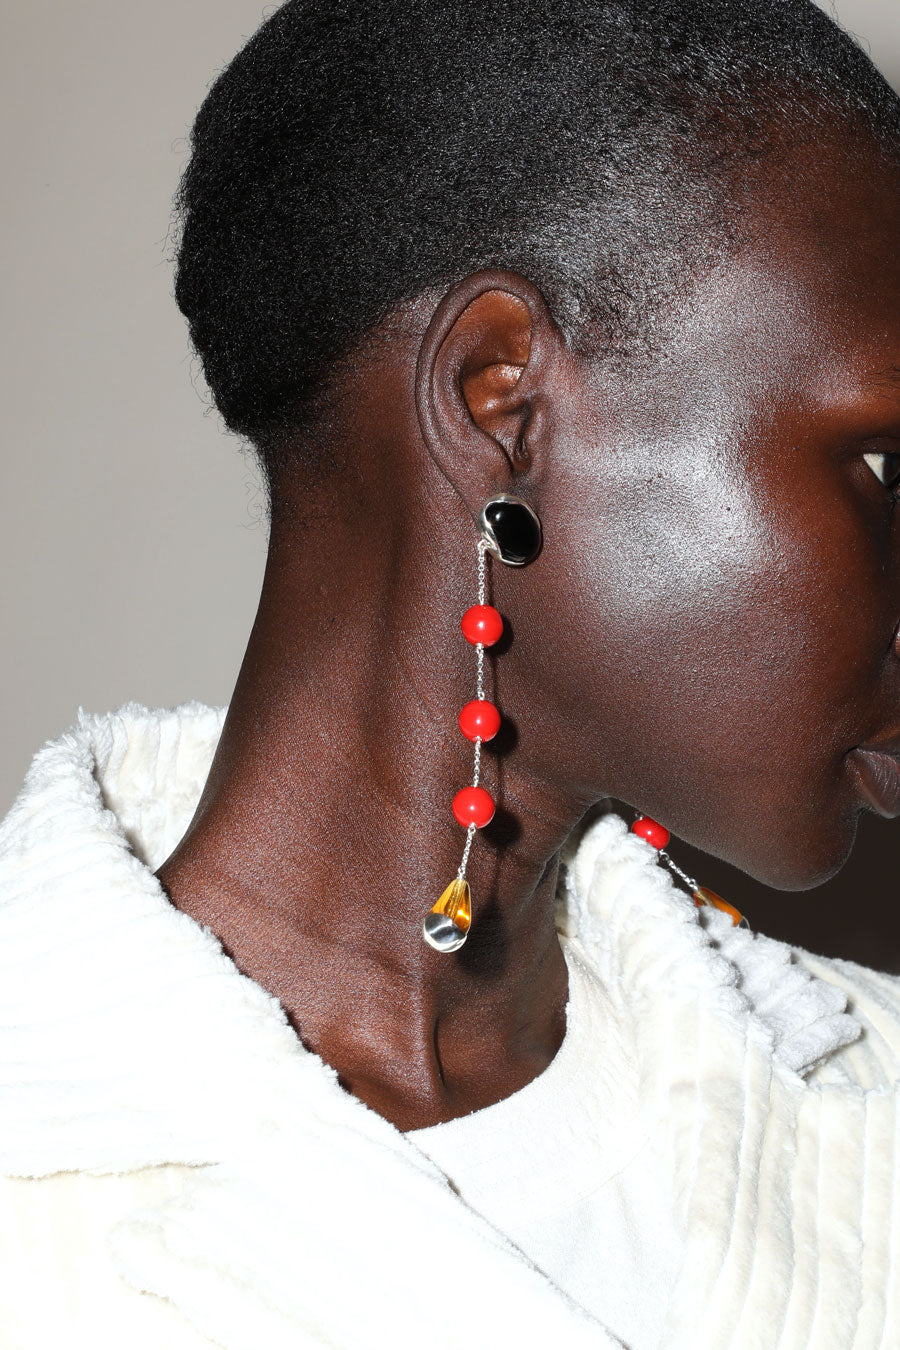 Faris Ovo Sway Earrings in Silver, Onyx, Red and Yellow Glass